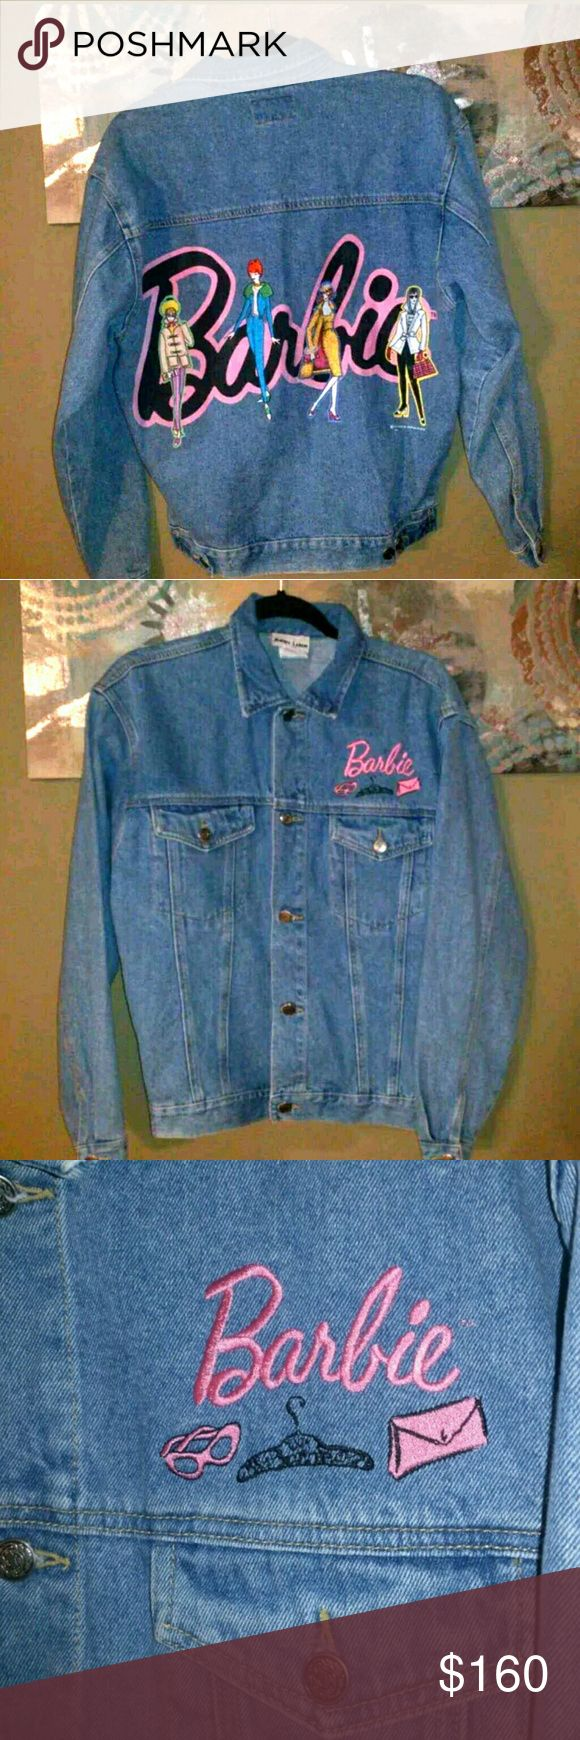 VTG BARBIE DENIM JACKET JERRY LEIGH WOMENS 90s Great vintage condition, rare, HTF, vintage Mattel x Jerry Leigh denim jacket from 1995. Tagged size womens small, but fits me (size M) a bit oversized so would work for sizes S-L, IMO.  The embroidery is flawless & so fab, the large graphic on the back is also in great condition. Minimal signs of wear. Wildfox asos dollskill lazy oaf unif nasty gal topshop #barbie #y2k #90s #vintage #deadstock #rare #unif #dollskill #lazyoaf #vtg #htf  Message…